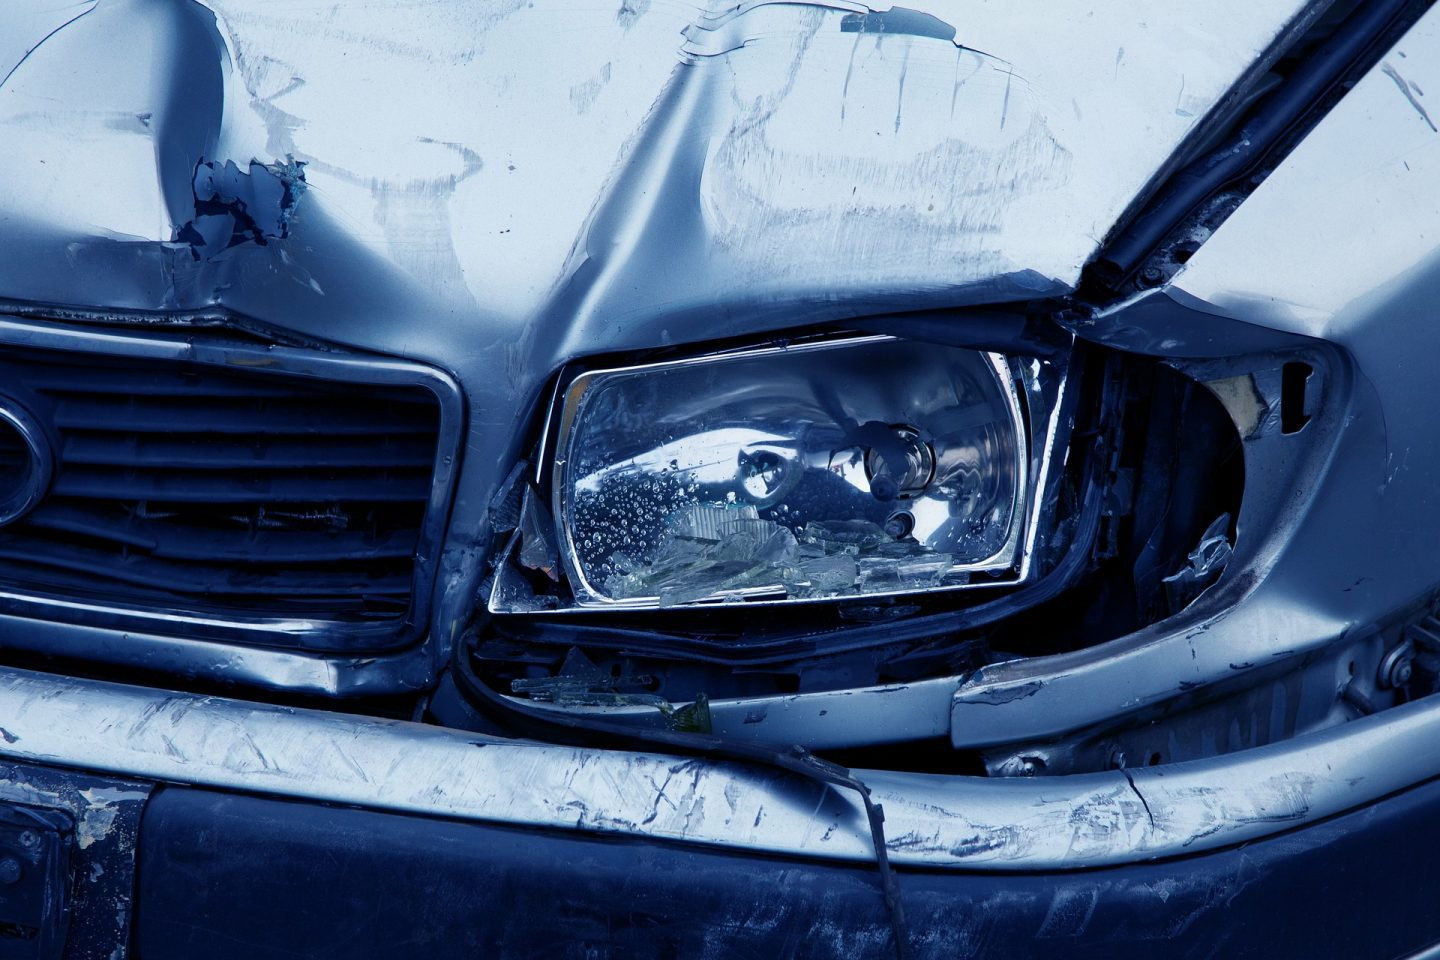 A grey car that has been in a crash. The image shows a close up of the headlamp and grill